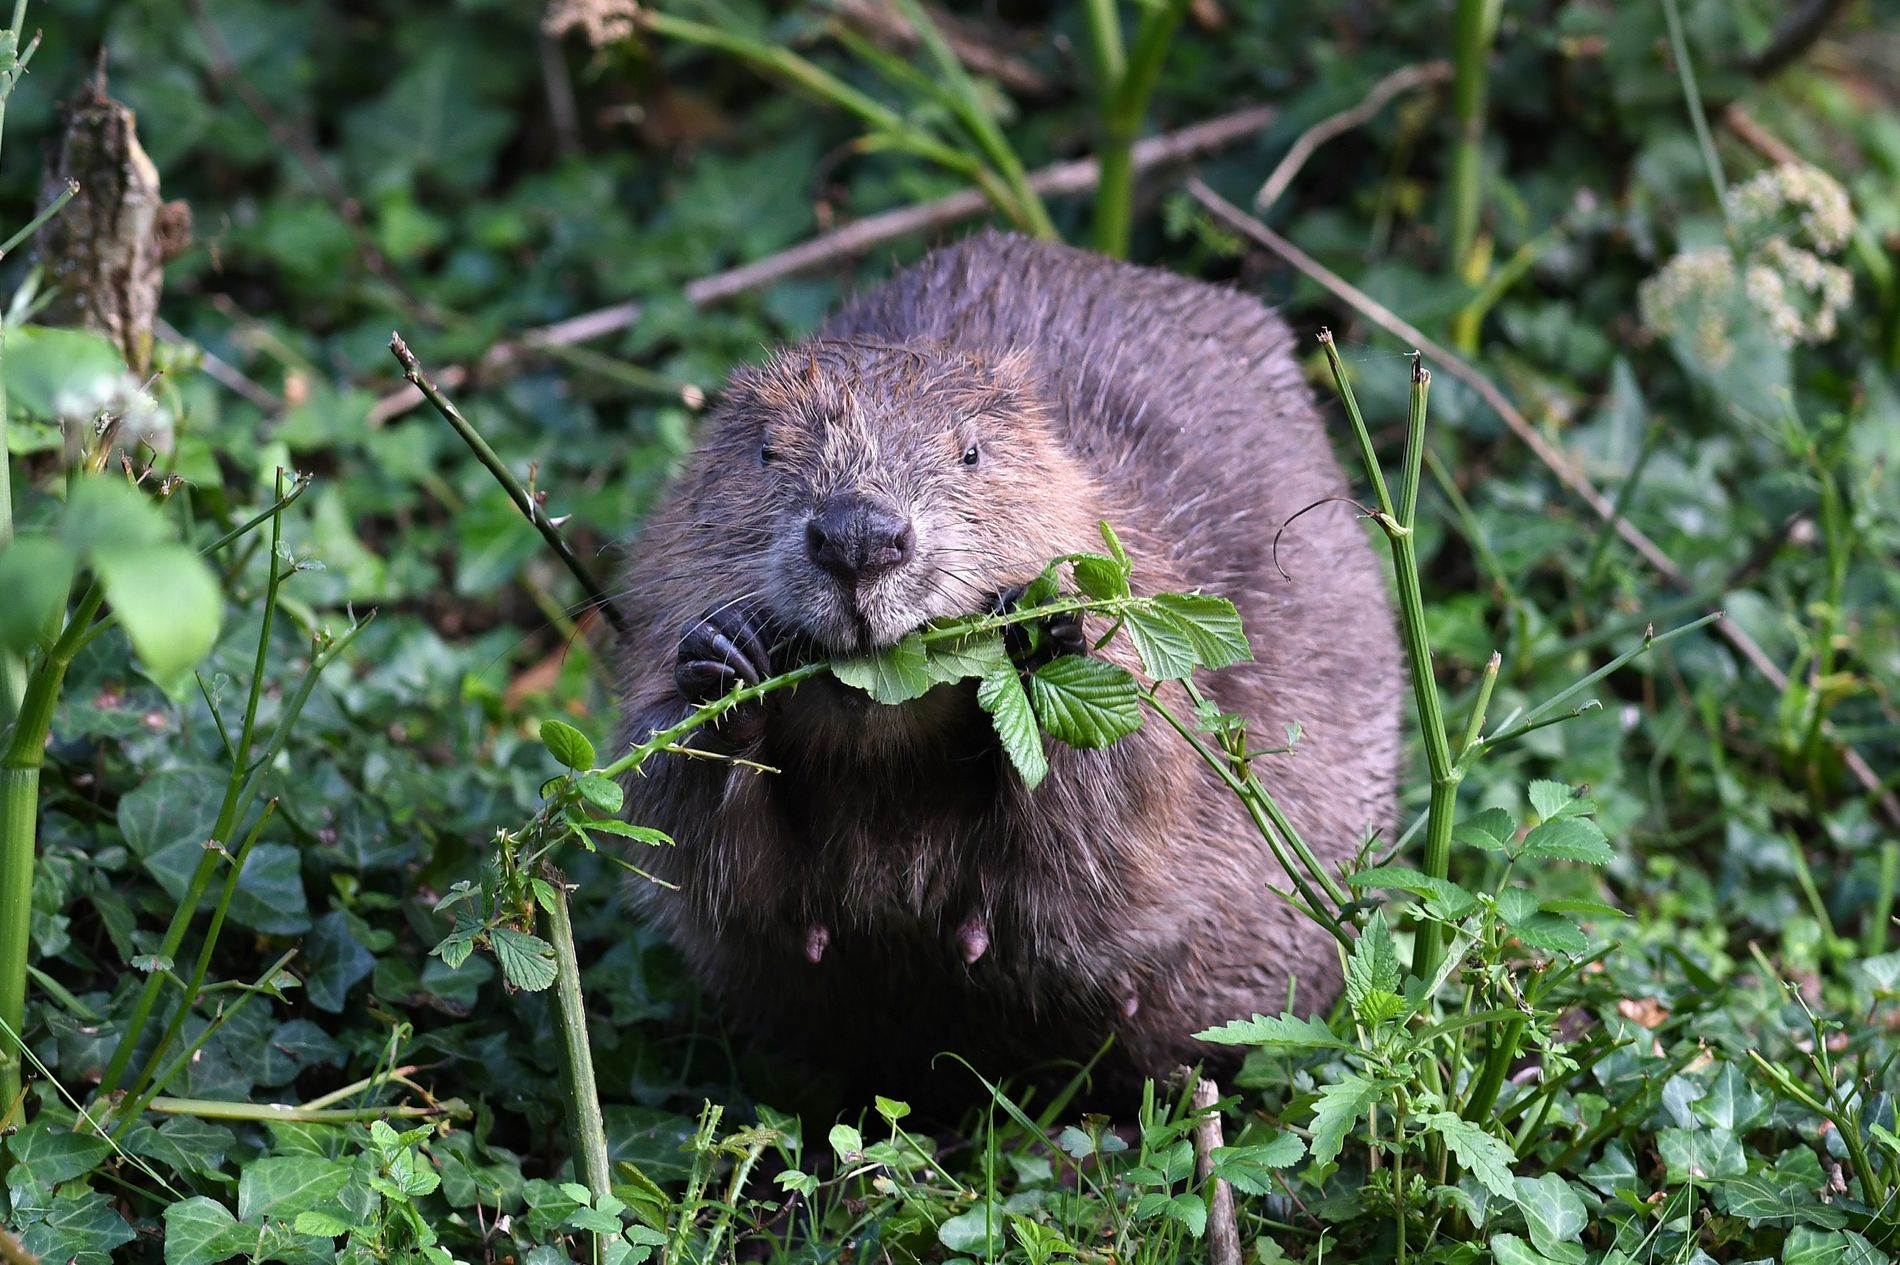 A lactating female beaver in the Cornwall project gorges on some brambles.